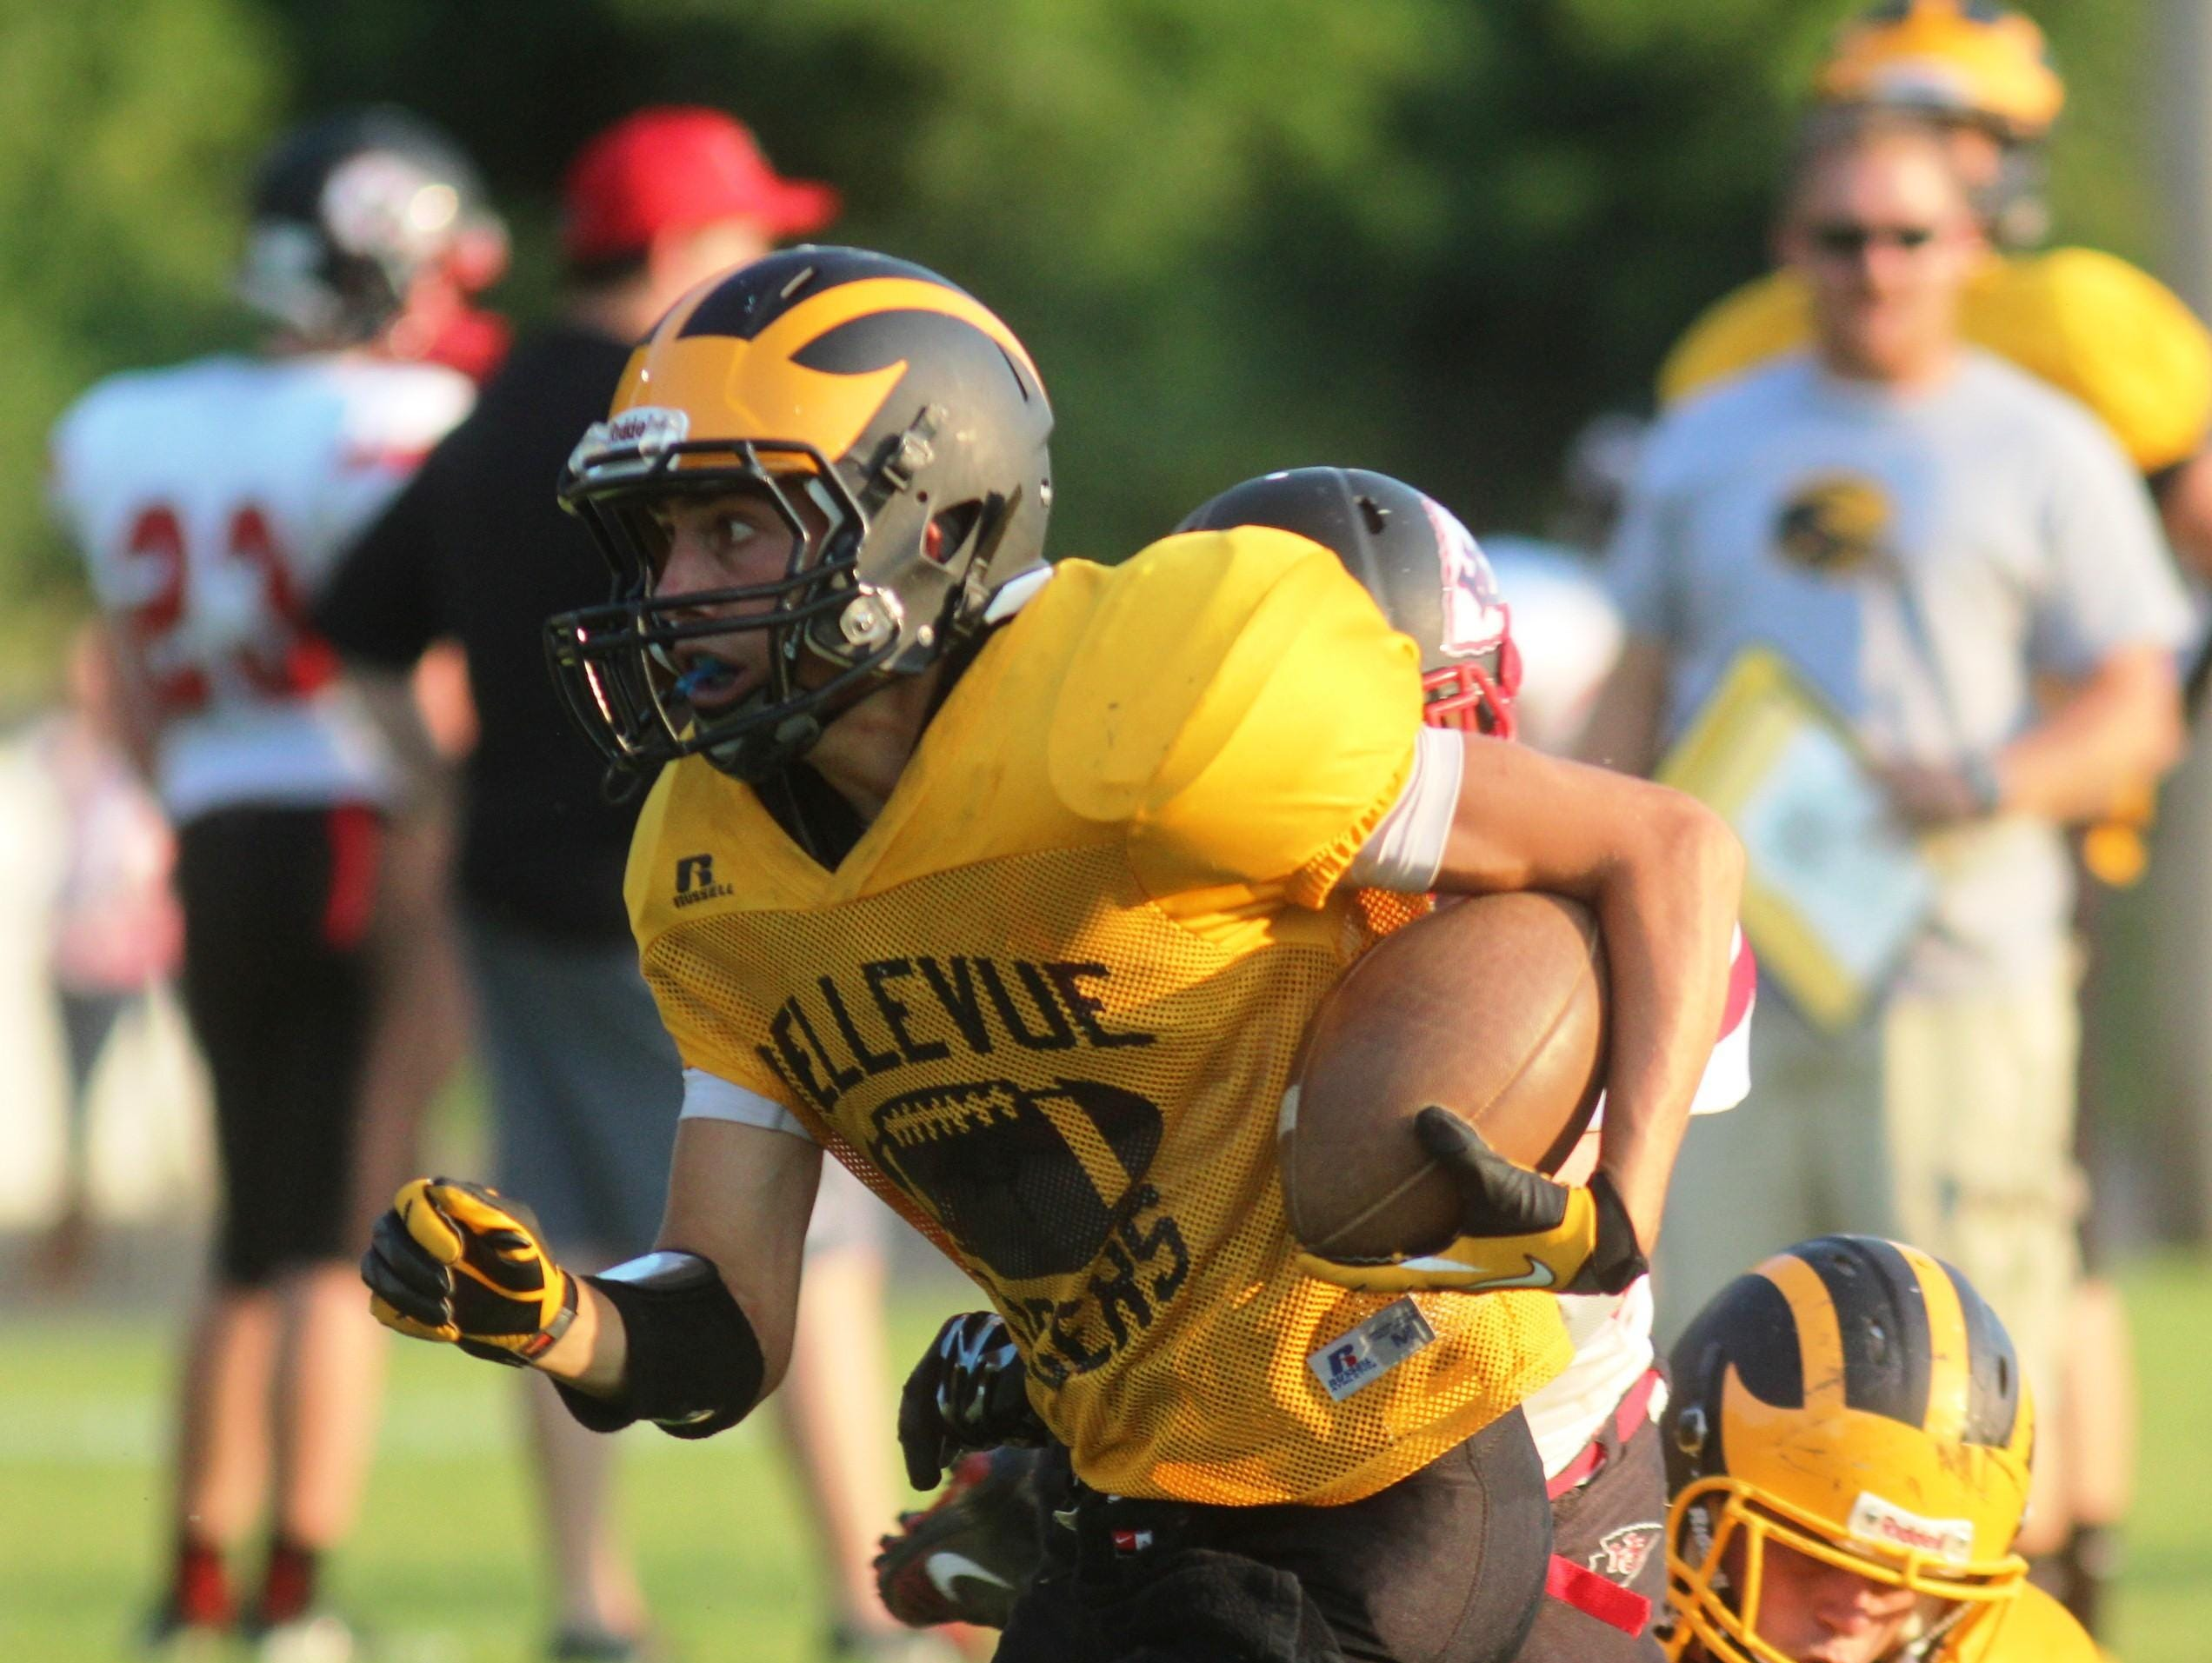 Bellevue's Nick Ackerson makes a nice gain during a scrimmage against Holy Cross.